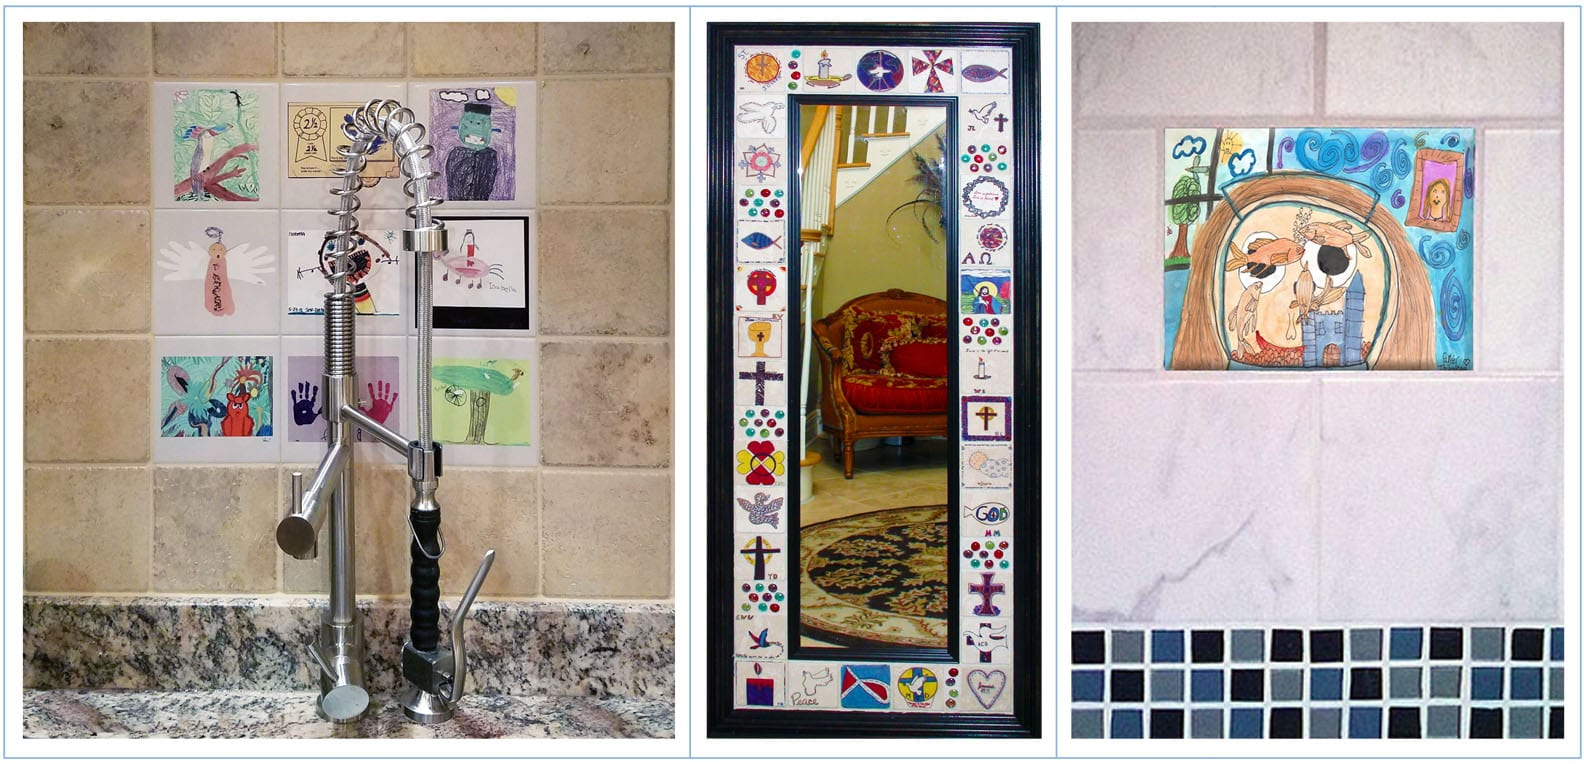 Tile can be imprinted with your art to make awesome creative tile walls and tile installations